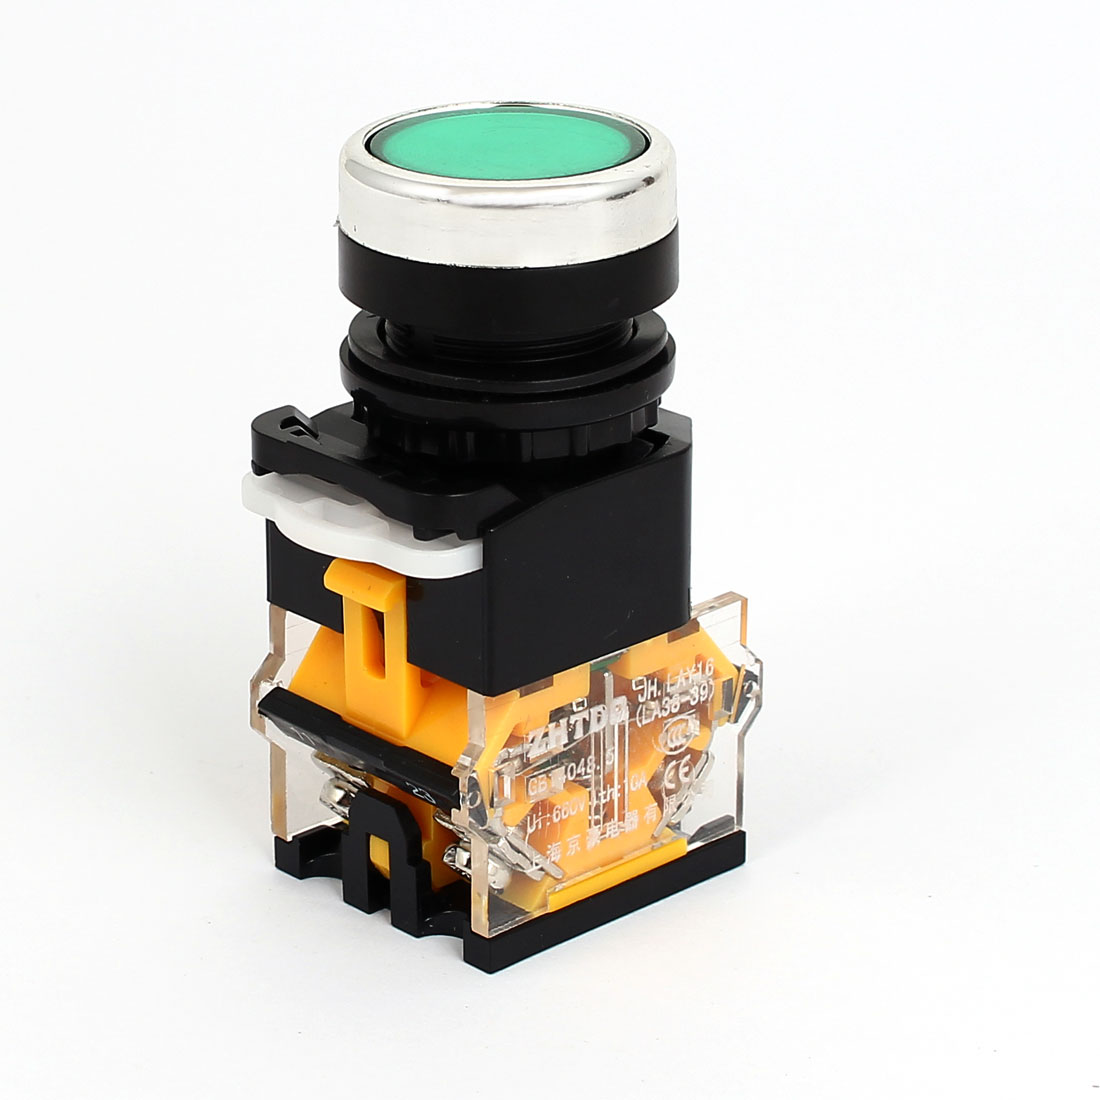 AC 220V Green Light LED Indicator Panel Mounted Self Locking Push Button Switch 660V 10A